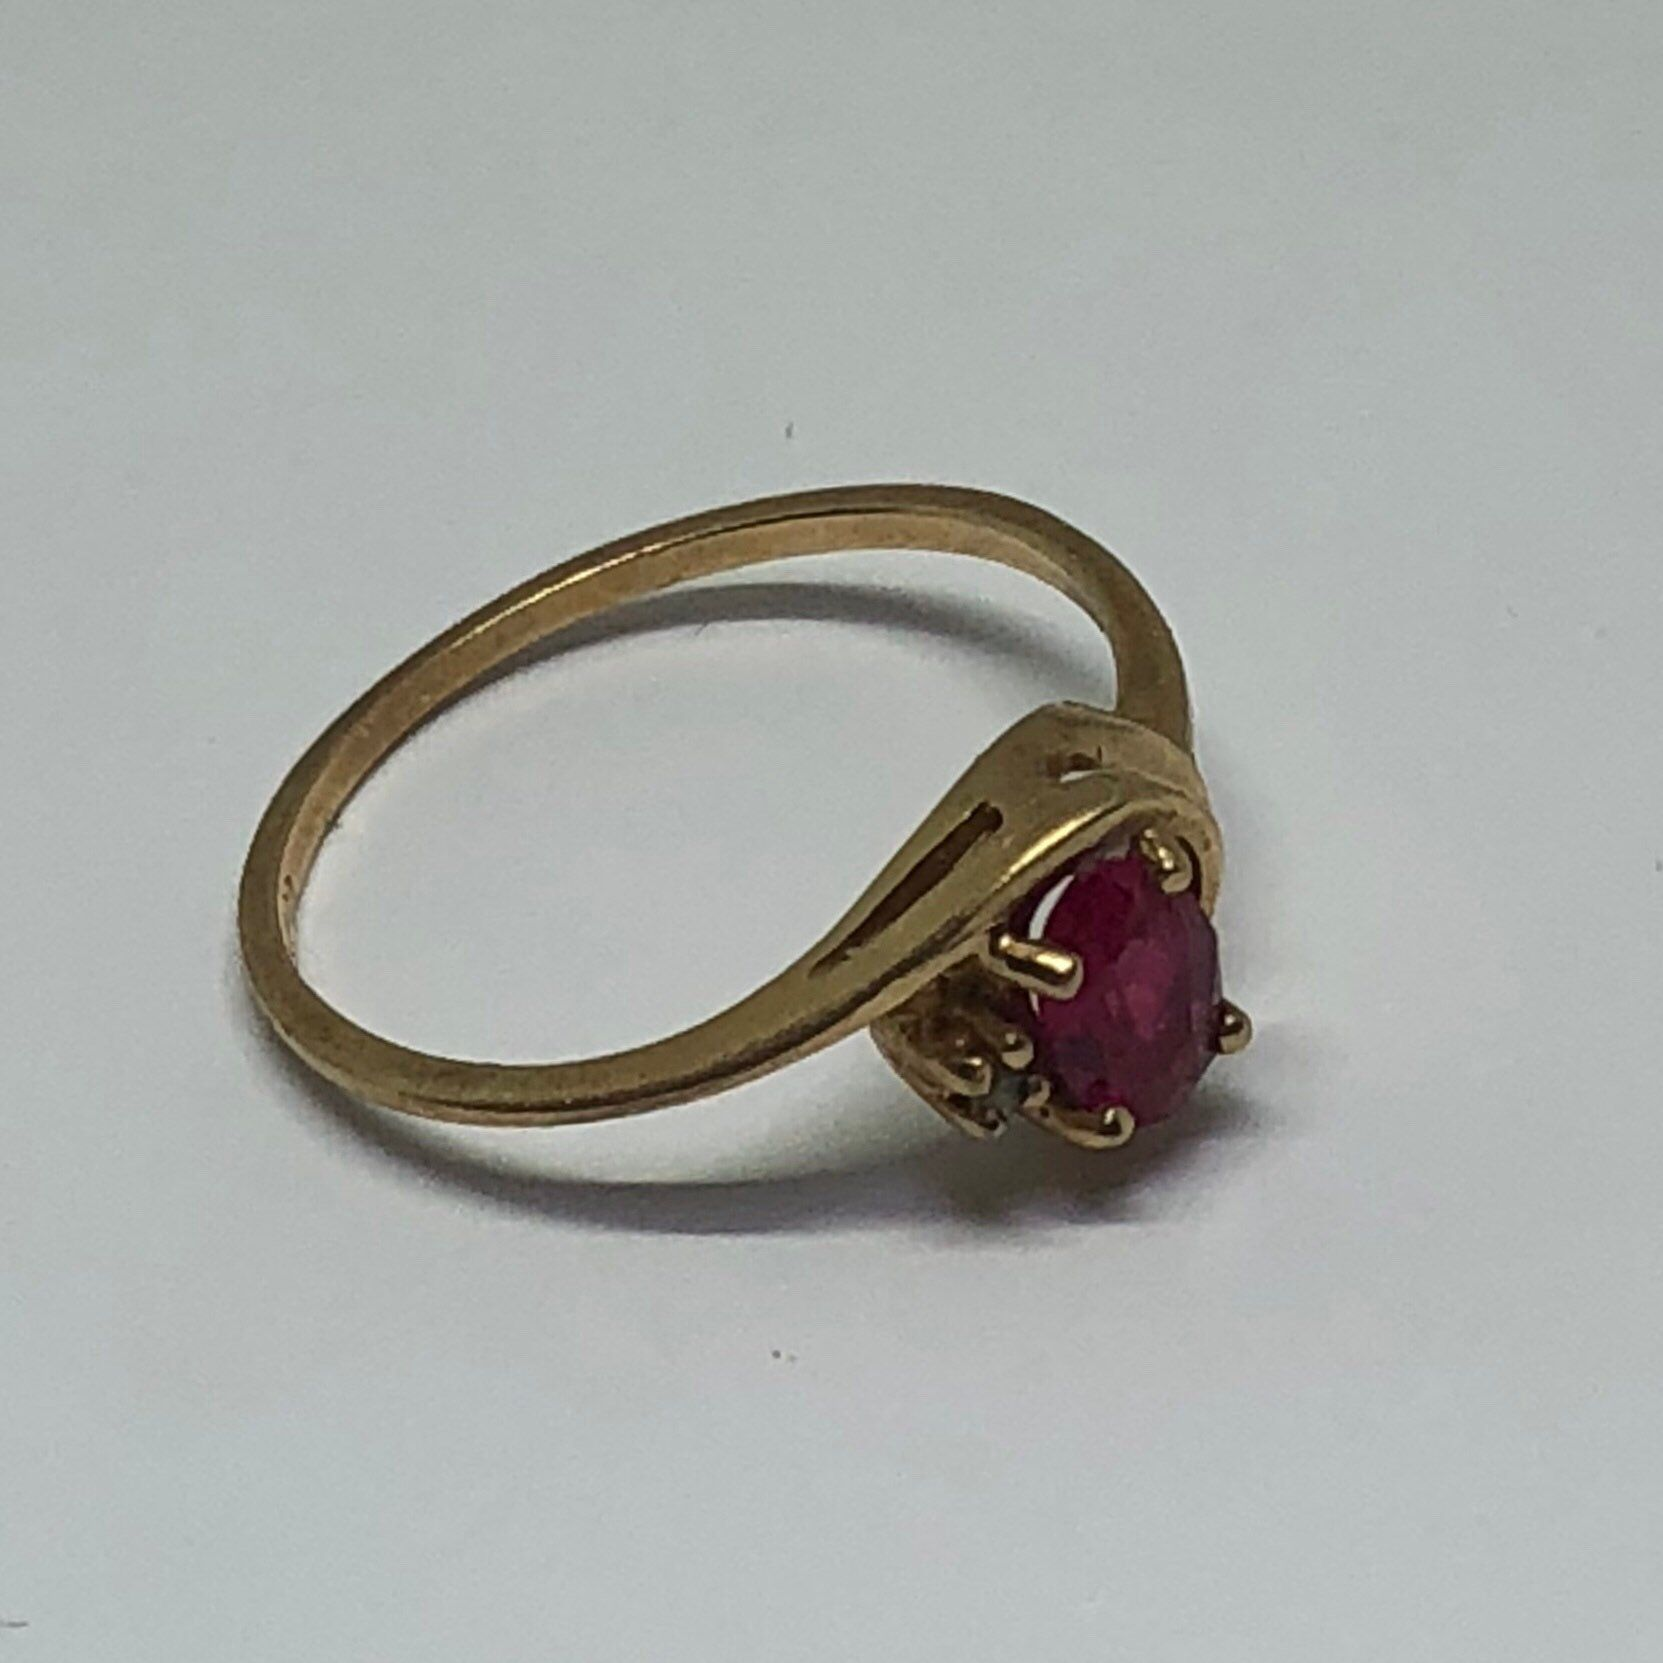 Gold Red Ring 10k Gold Ring Size 6 1 2 Vintage 10k Yellow Gold Ring Unknown Light Red Colored Stone More Likely A Ruby Then A Garnet With Images Yellow Gold Rings